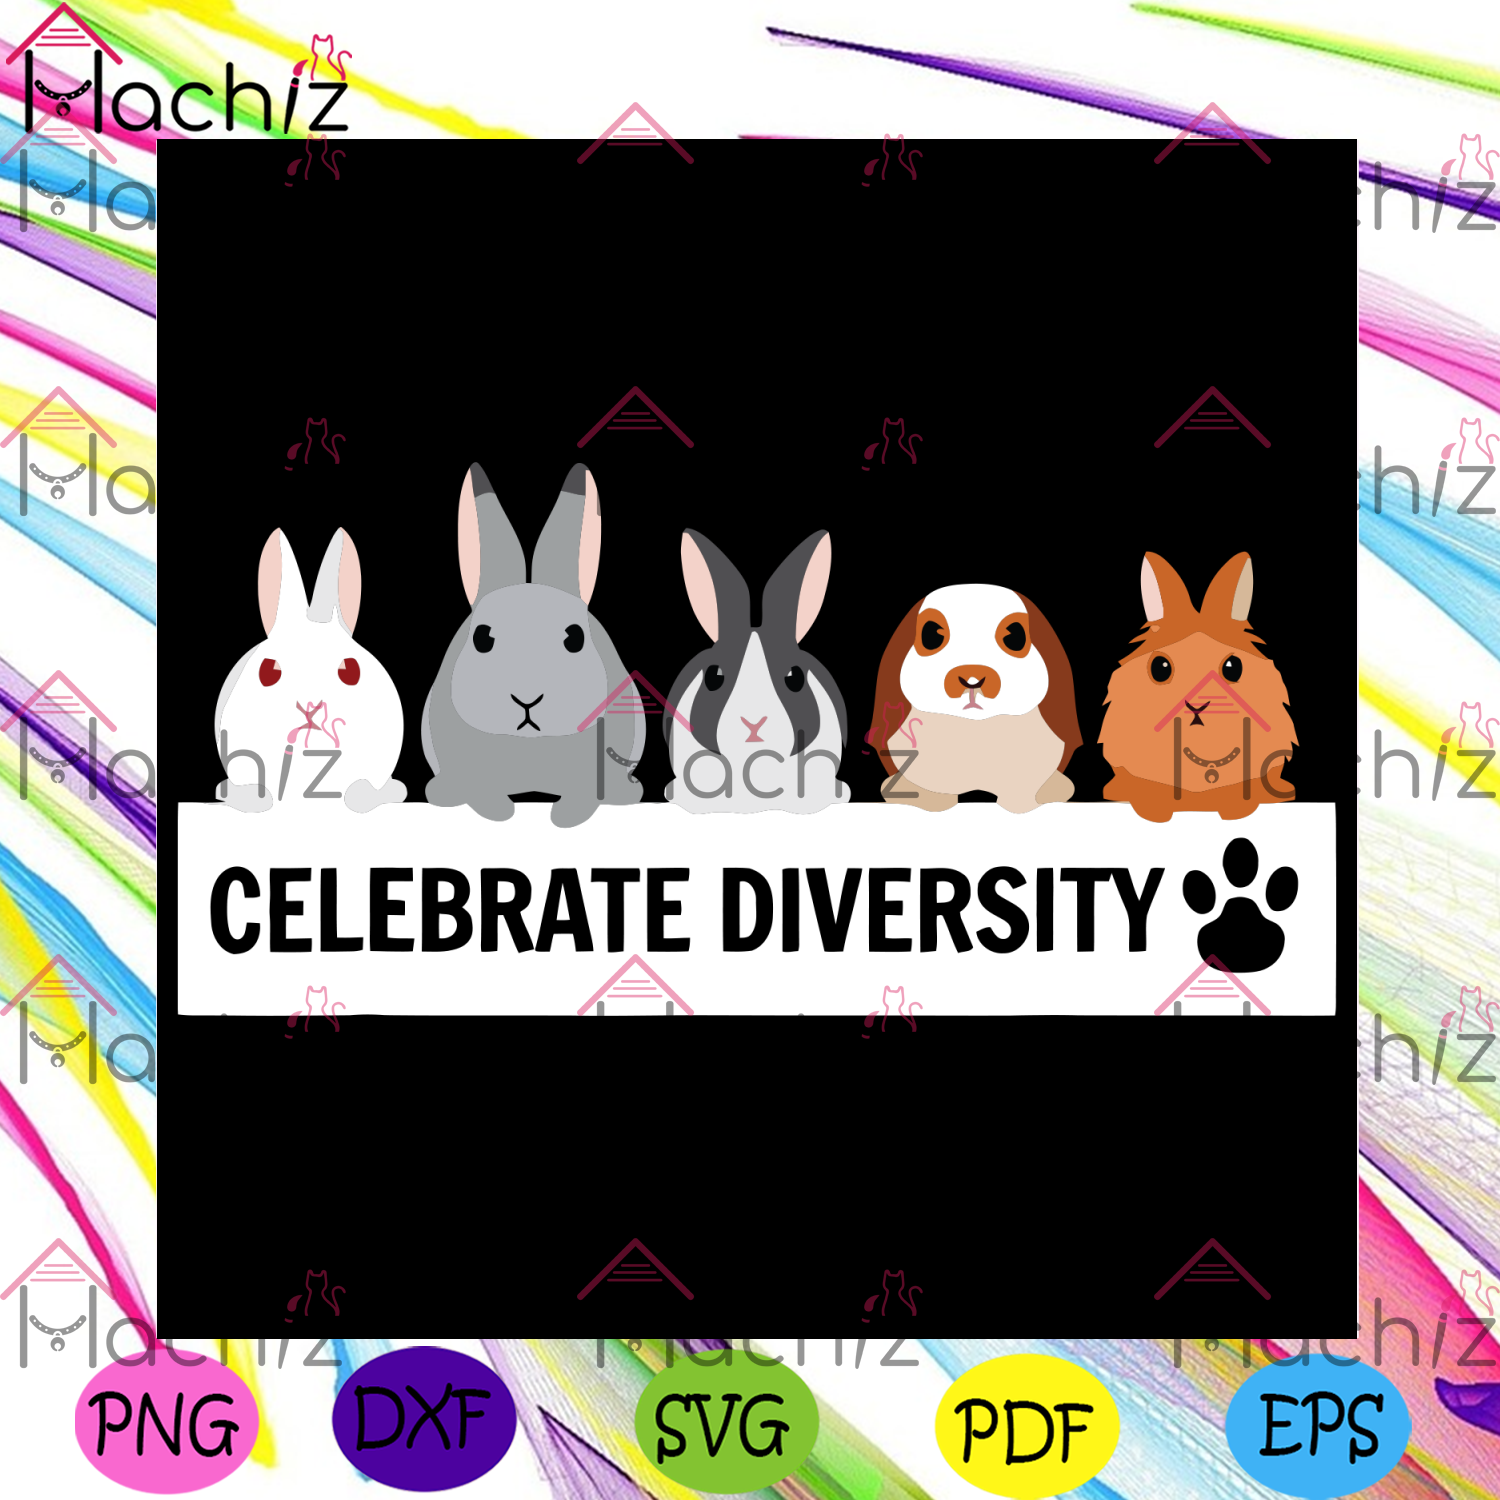 Celebrate Diversity Svg, Trending Svg, Celebrate Diversity Svg, Rabbit Svg, Rabbit Lover Svg, Cute Pet Svg, Bunny Svg, Cute Bunny Svg, Rabbit Shirt, Bunny Shirt, Rabbit Lover Gift, Svg Cricut, Silhouette Svg Files